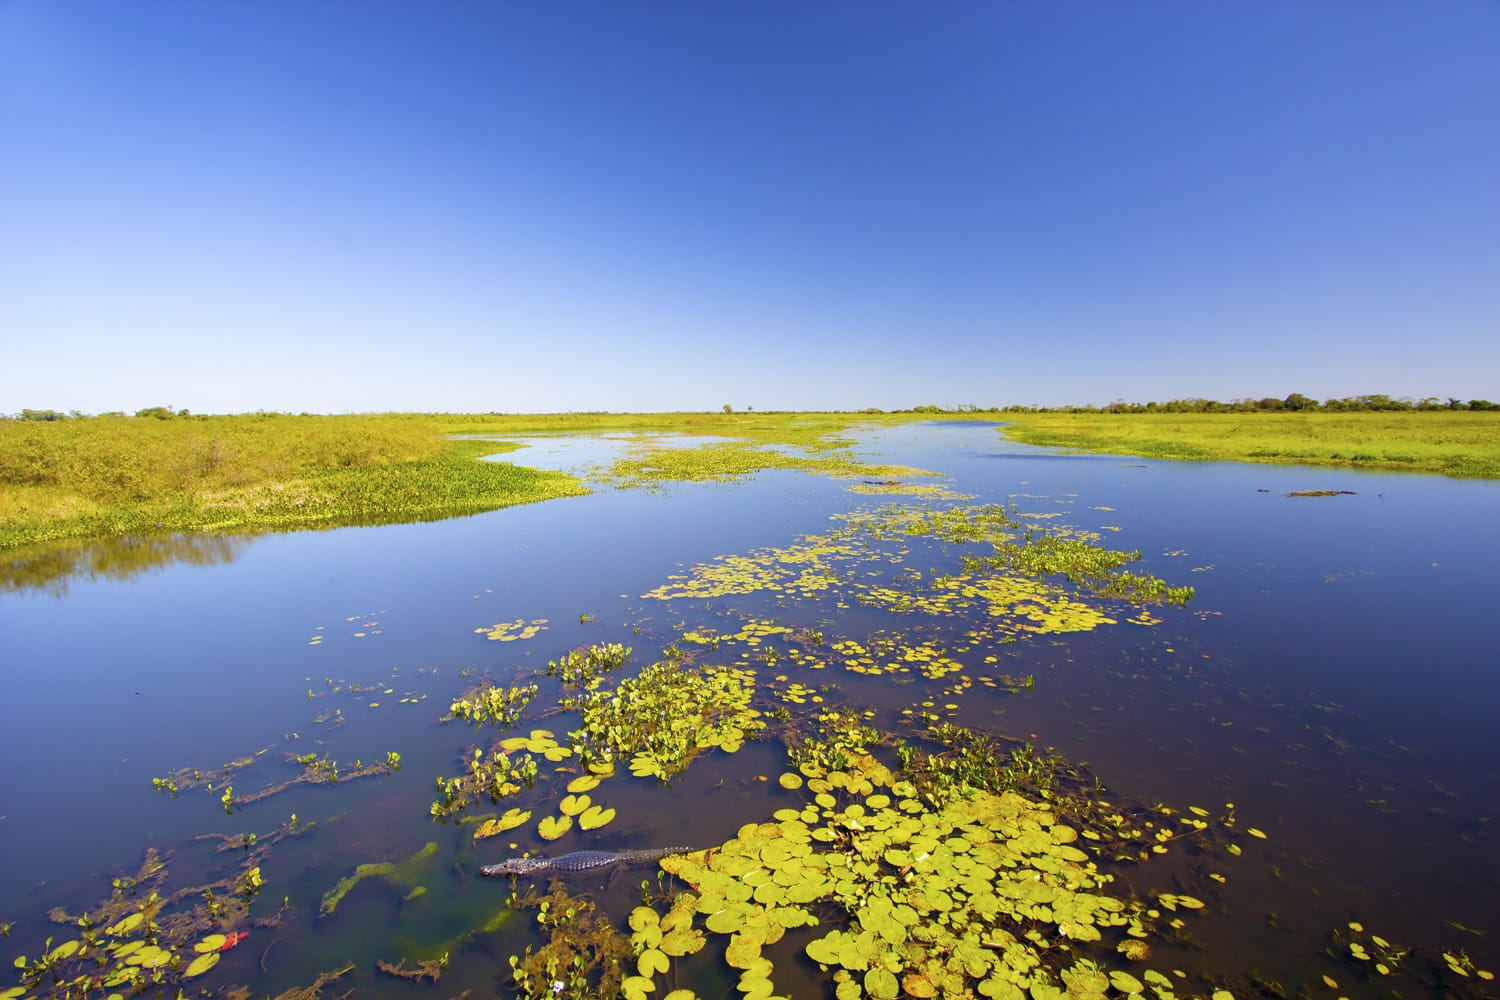 Wetland at pantanal Matogrossense National Park in Brazil